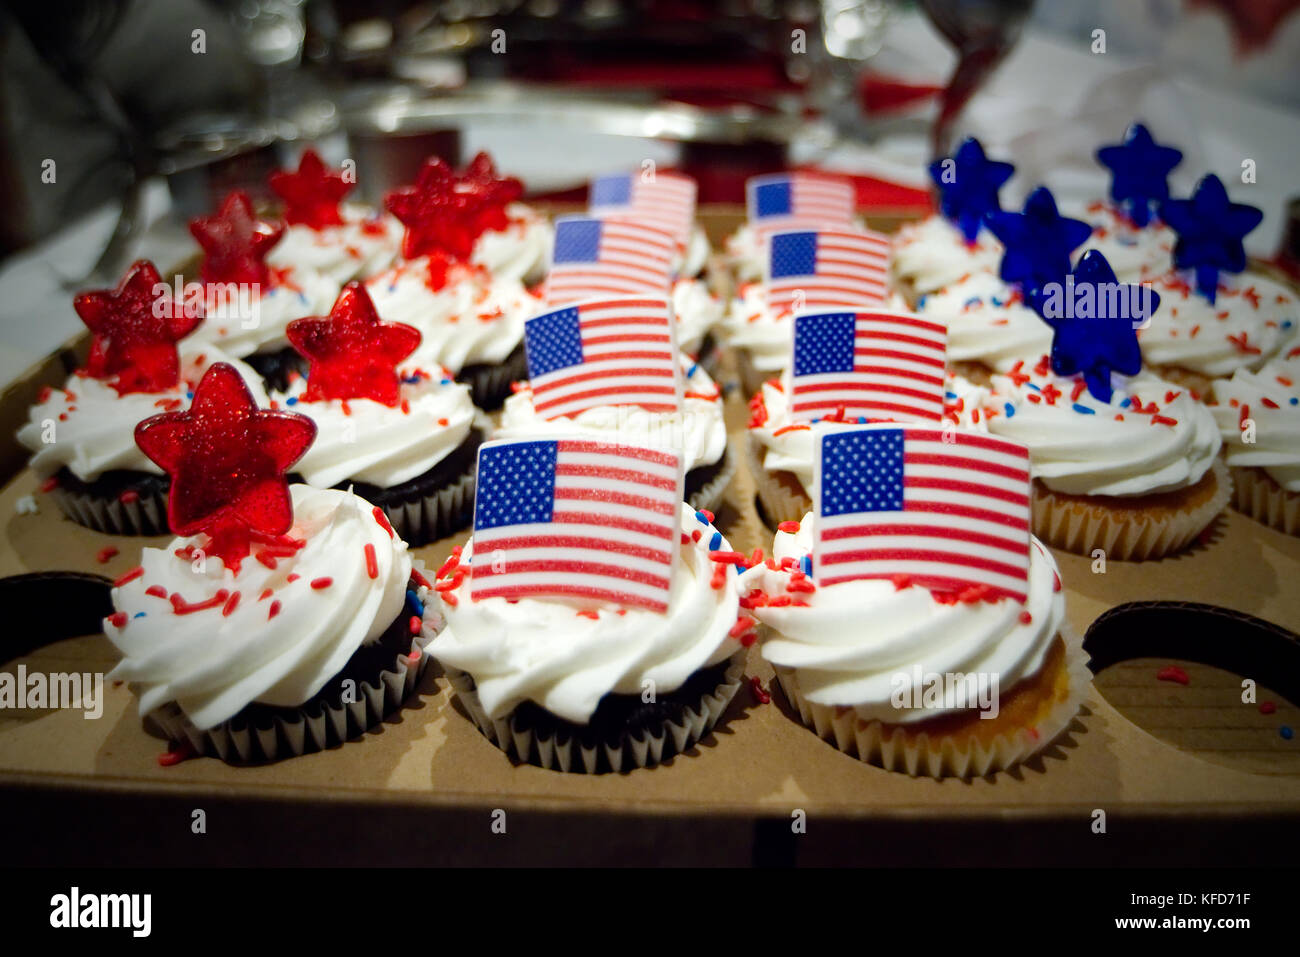 As the results of Election Day come in a tray with patriotic treats remain untouched at a post-election party. - Stock Image